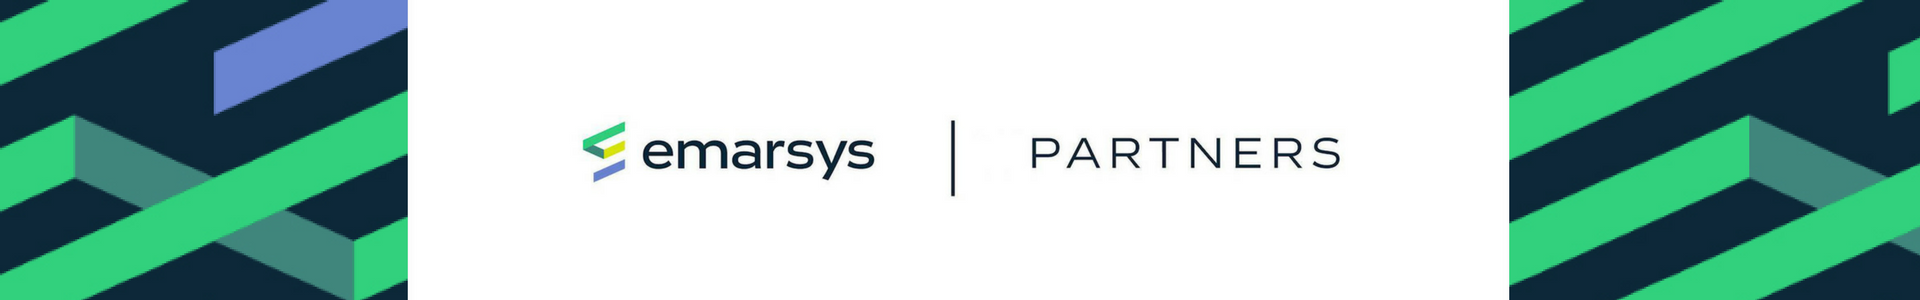 QIVOS partners with Emarsys marketing automation leader